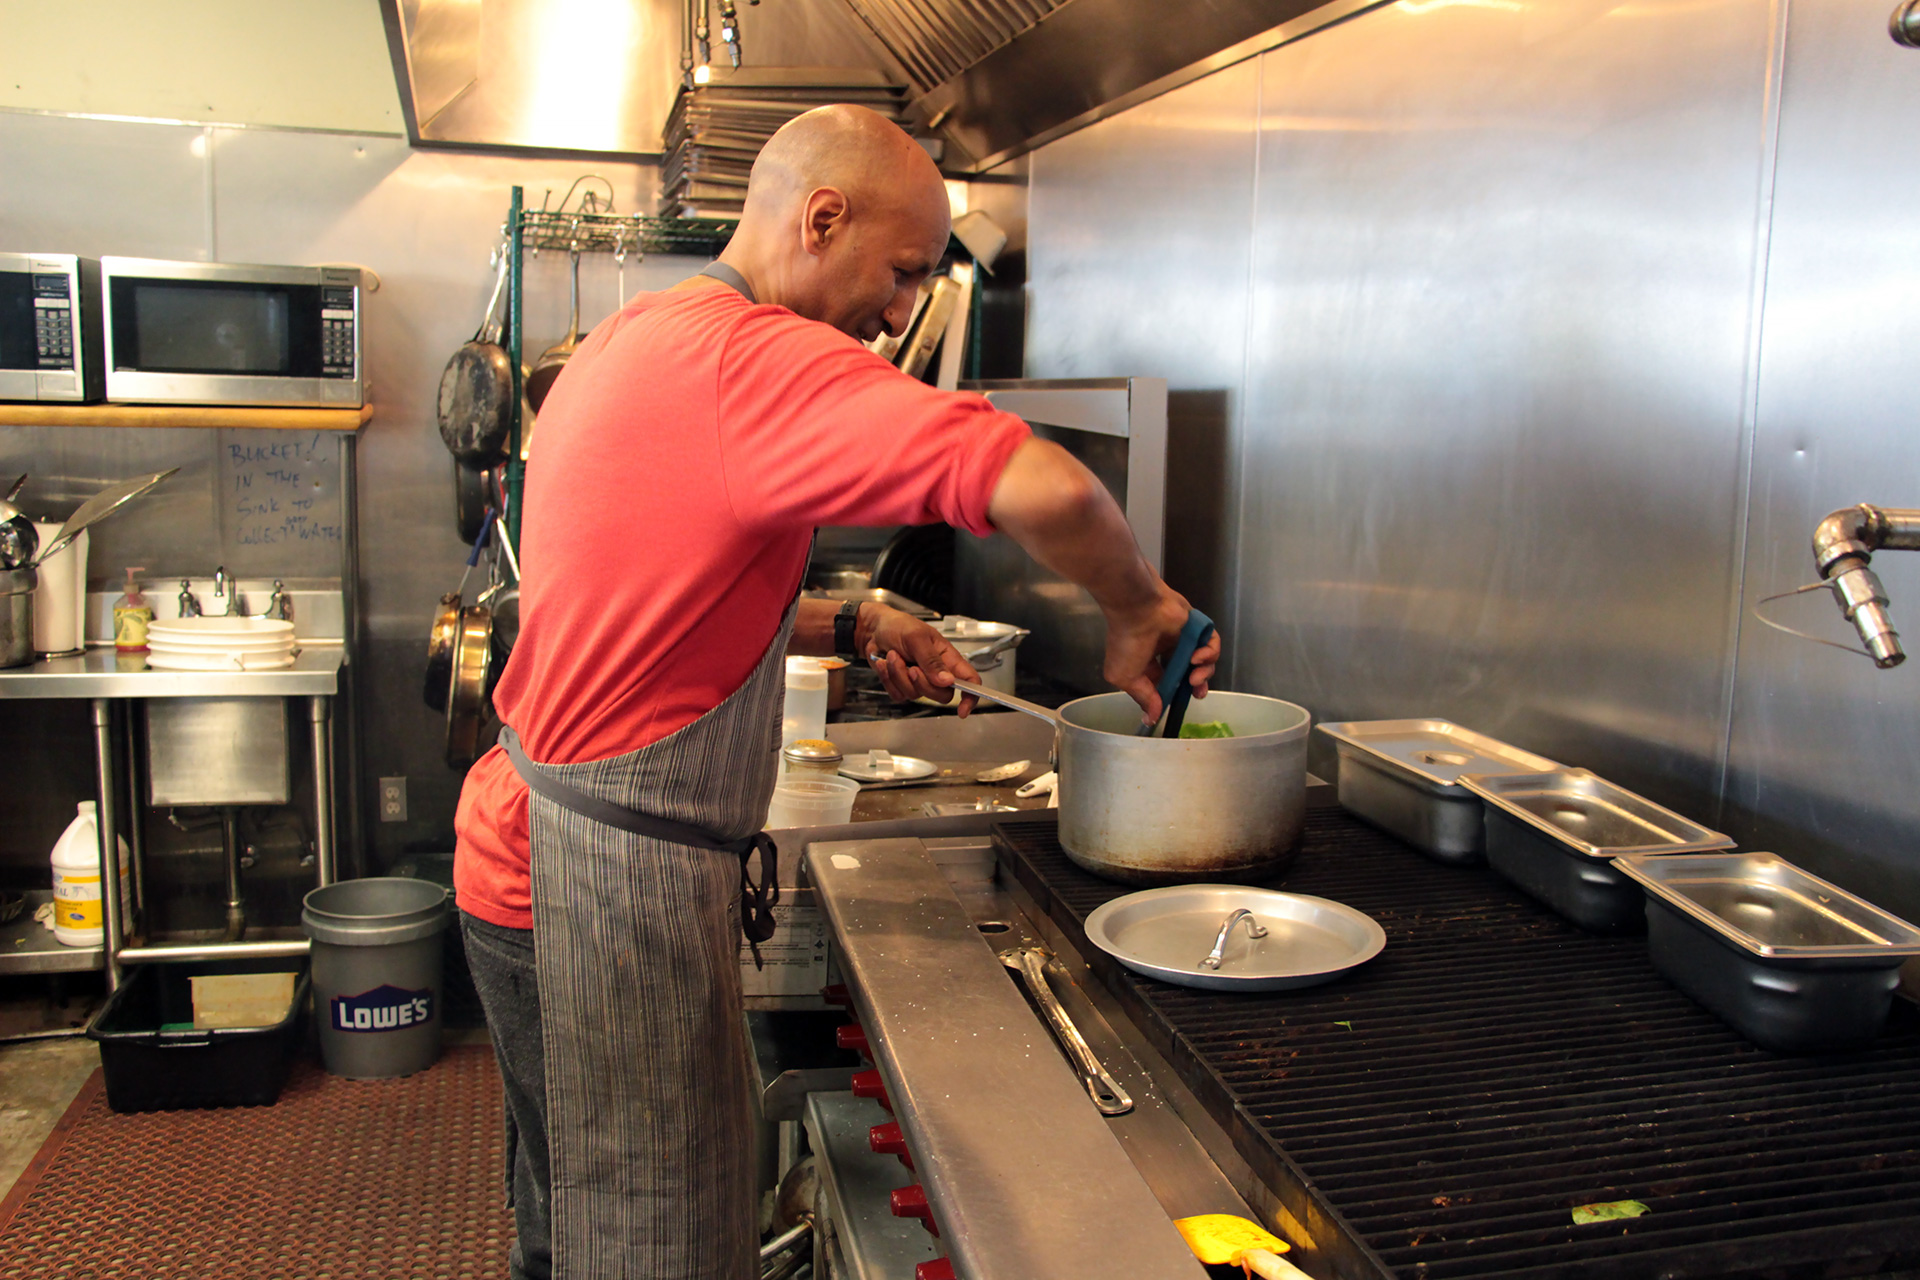 Eskender Aseged, owner/chef at Radio Africa, cooking in the kitchen.